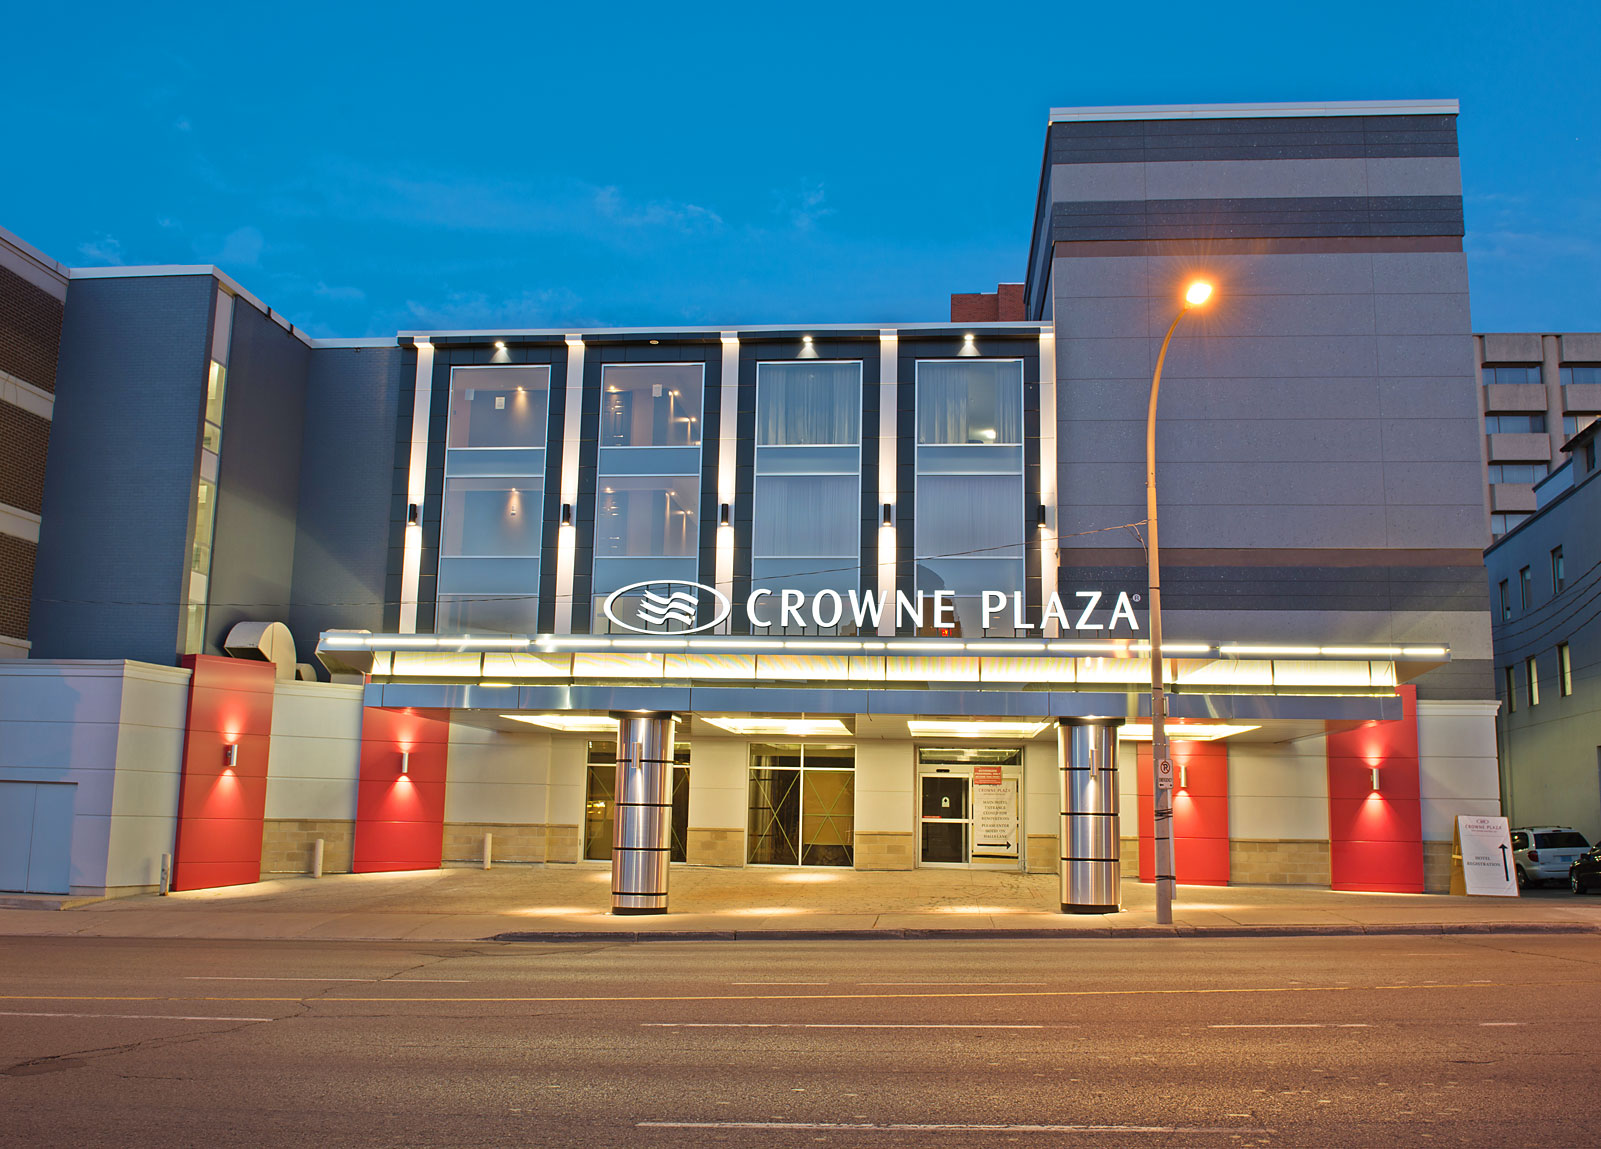 Delightful Hotels In Kitchener Waterloo Ontario #2: Crowne Plaza Kitchener Waterloo, Kitchener Deals See Hotel .